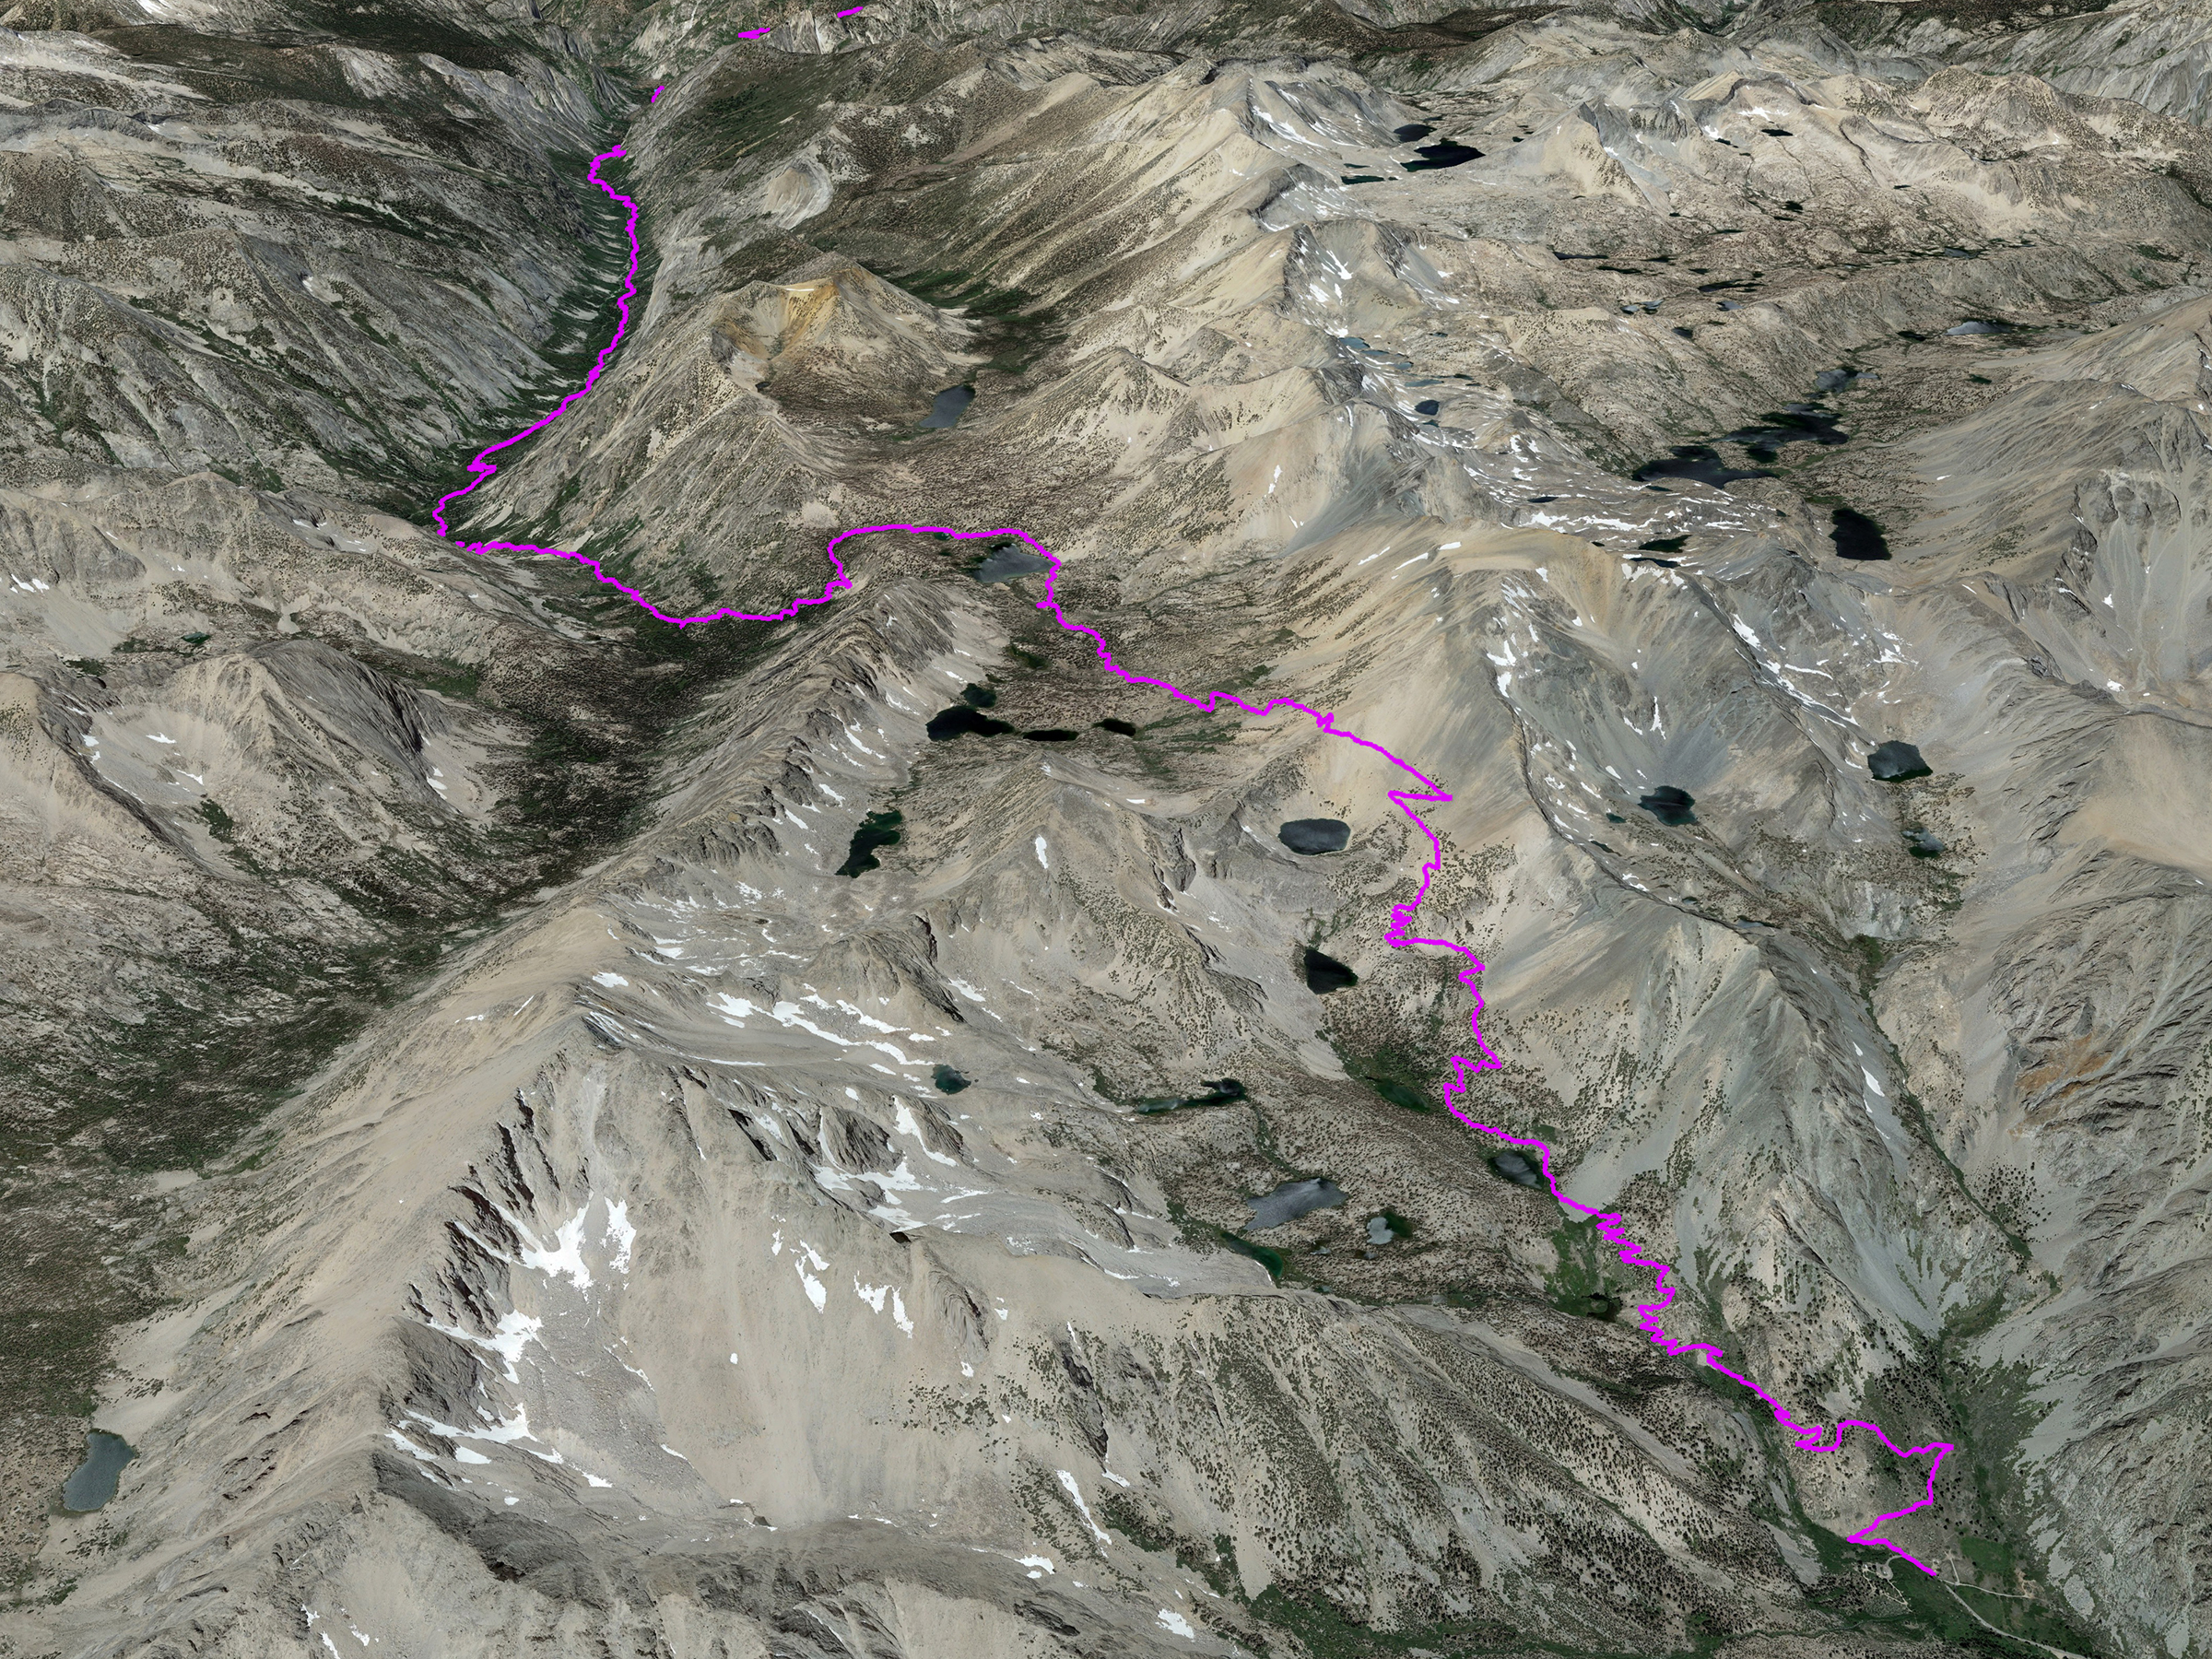 sierra-high-route-roads-end-to-onion-valley.jpg